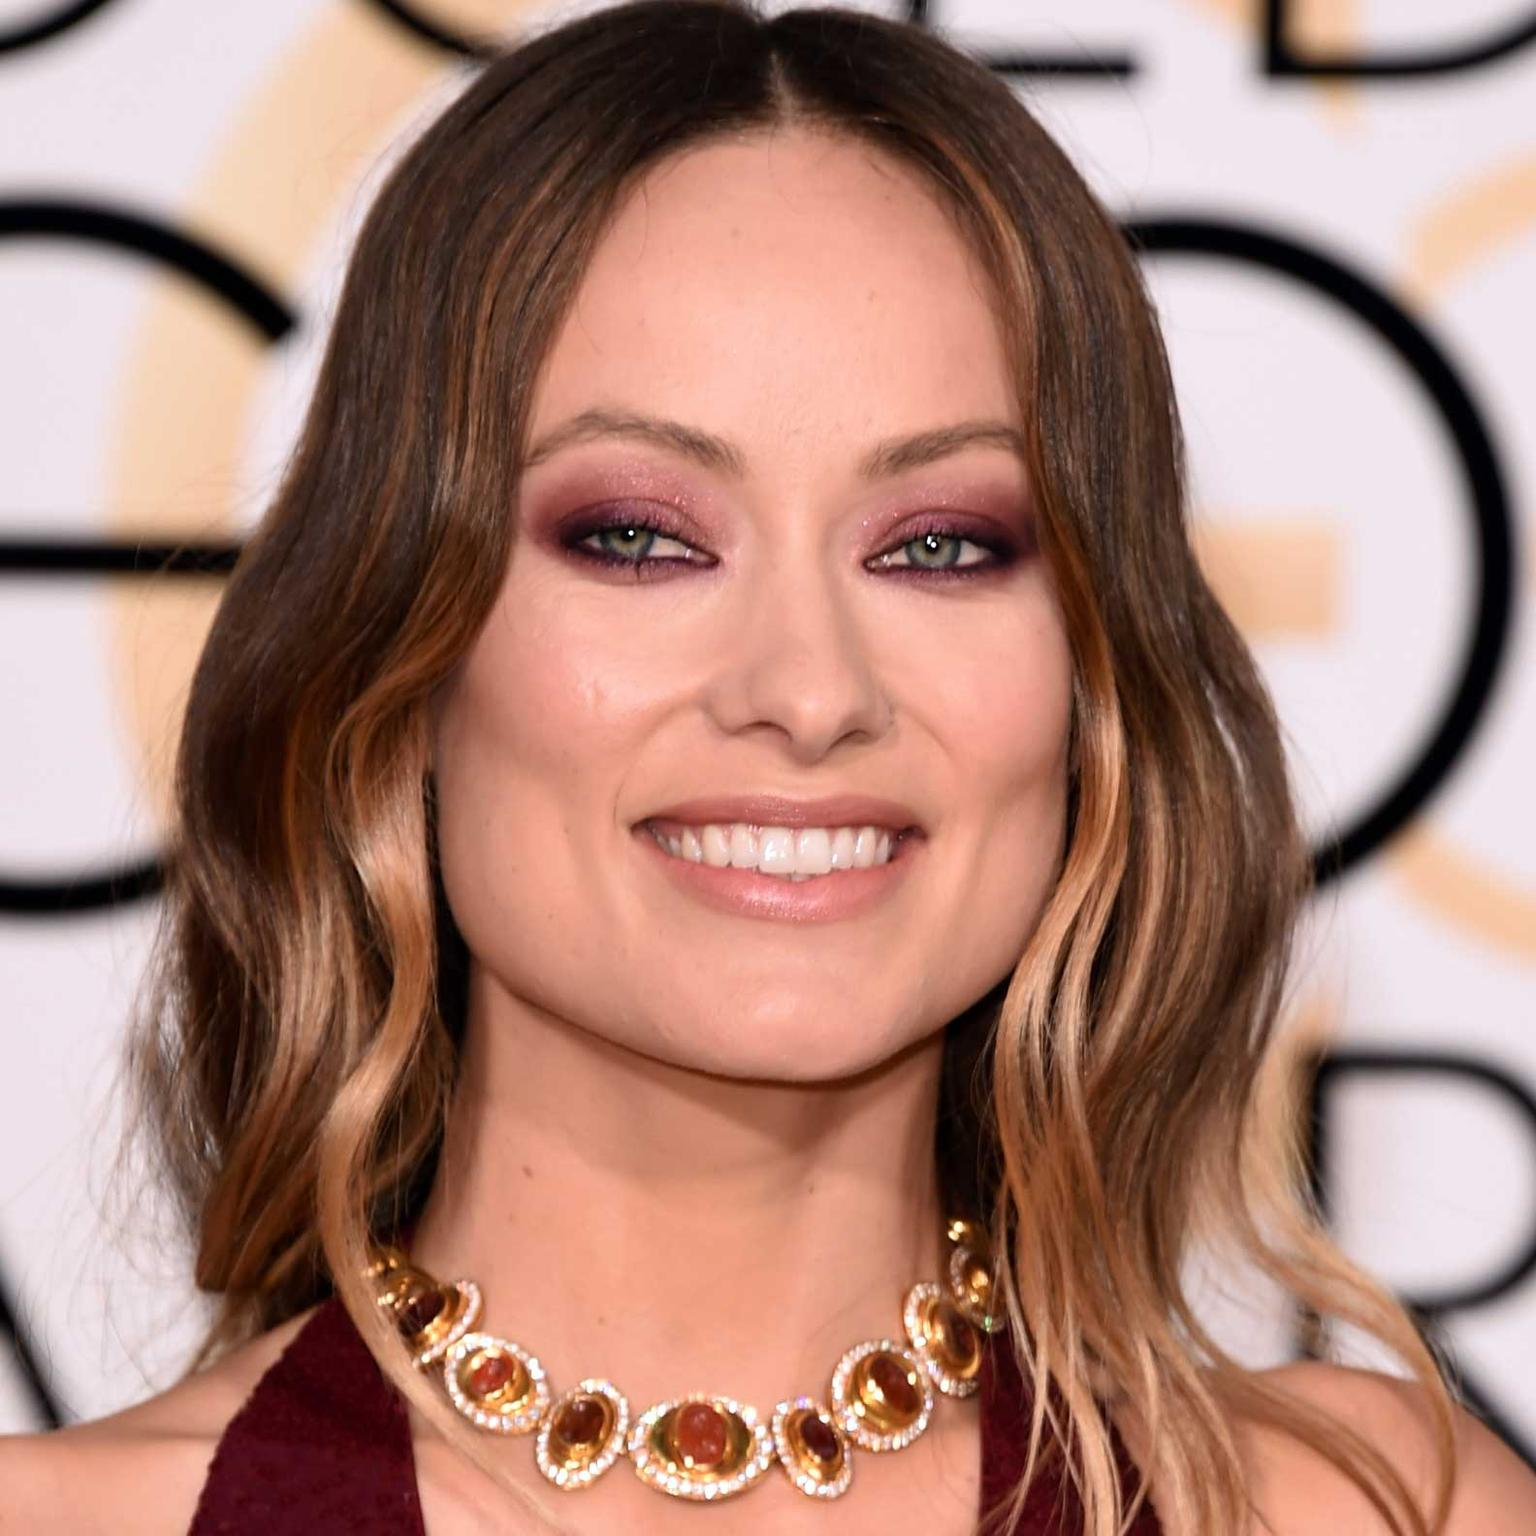 Olivia Wilde wore a vintage Bulgari necklace at the Golden Globes 2016